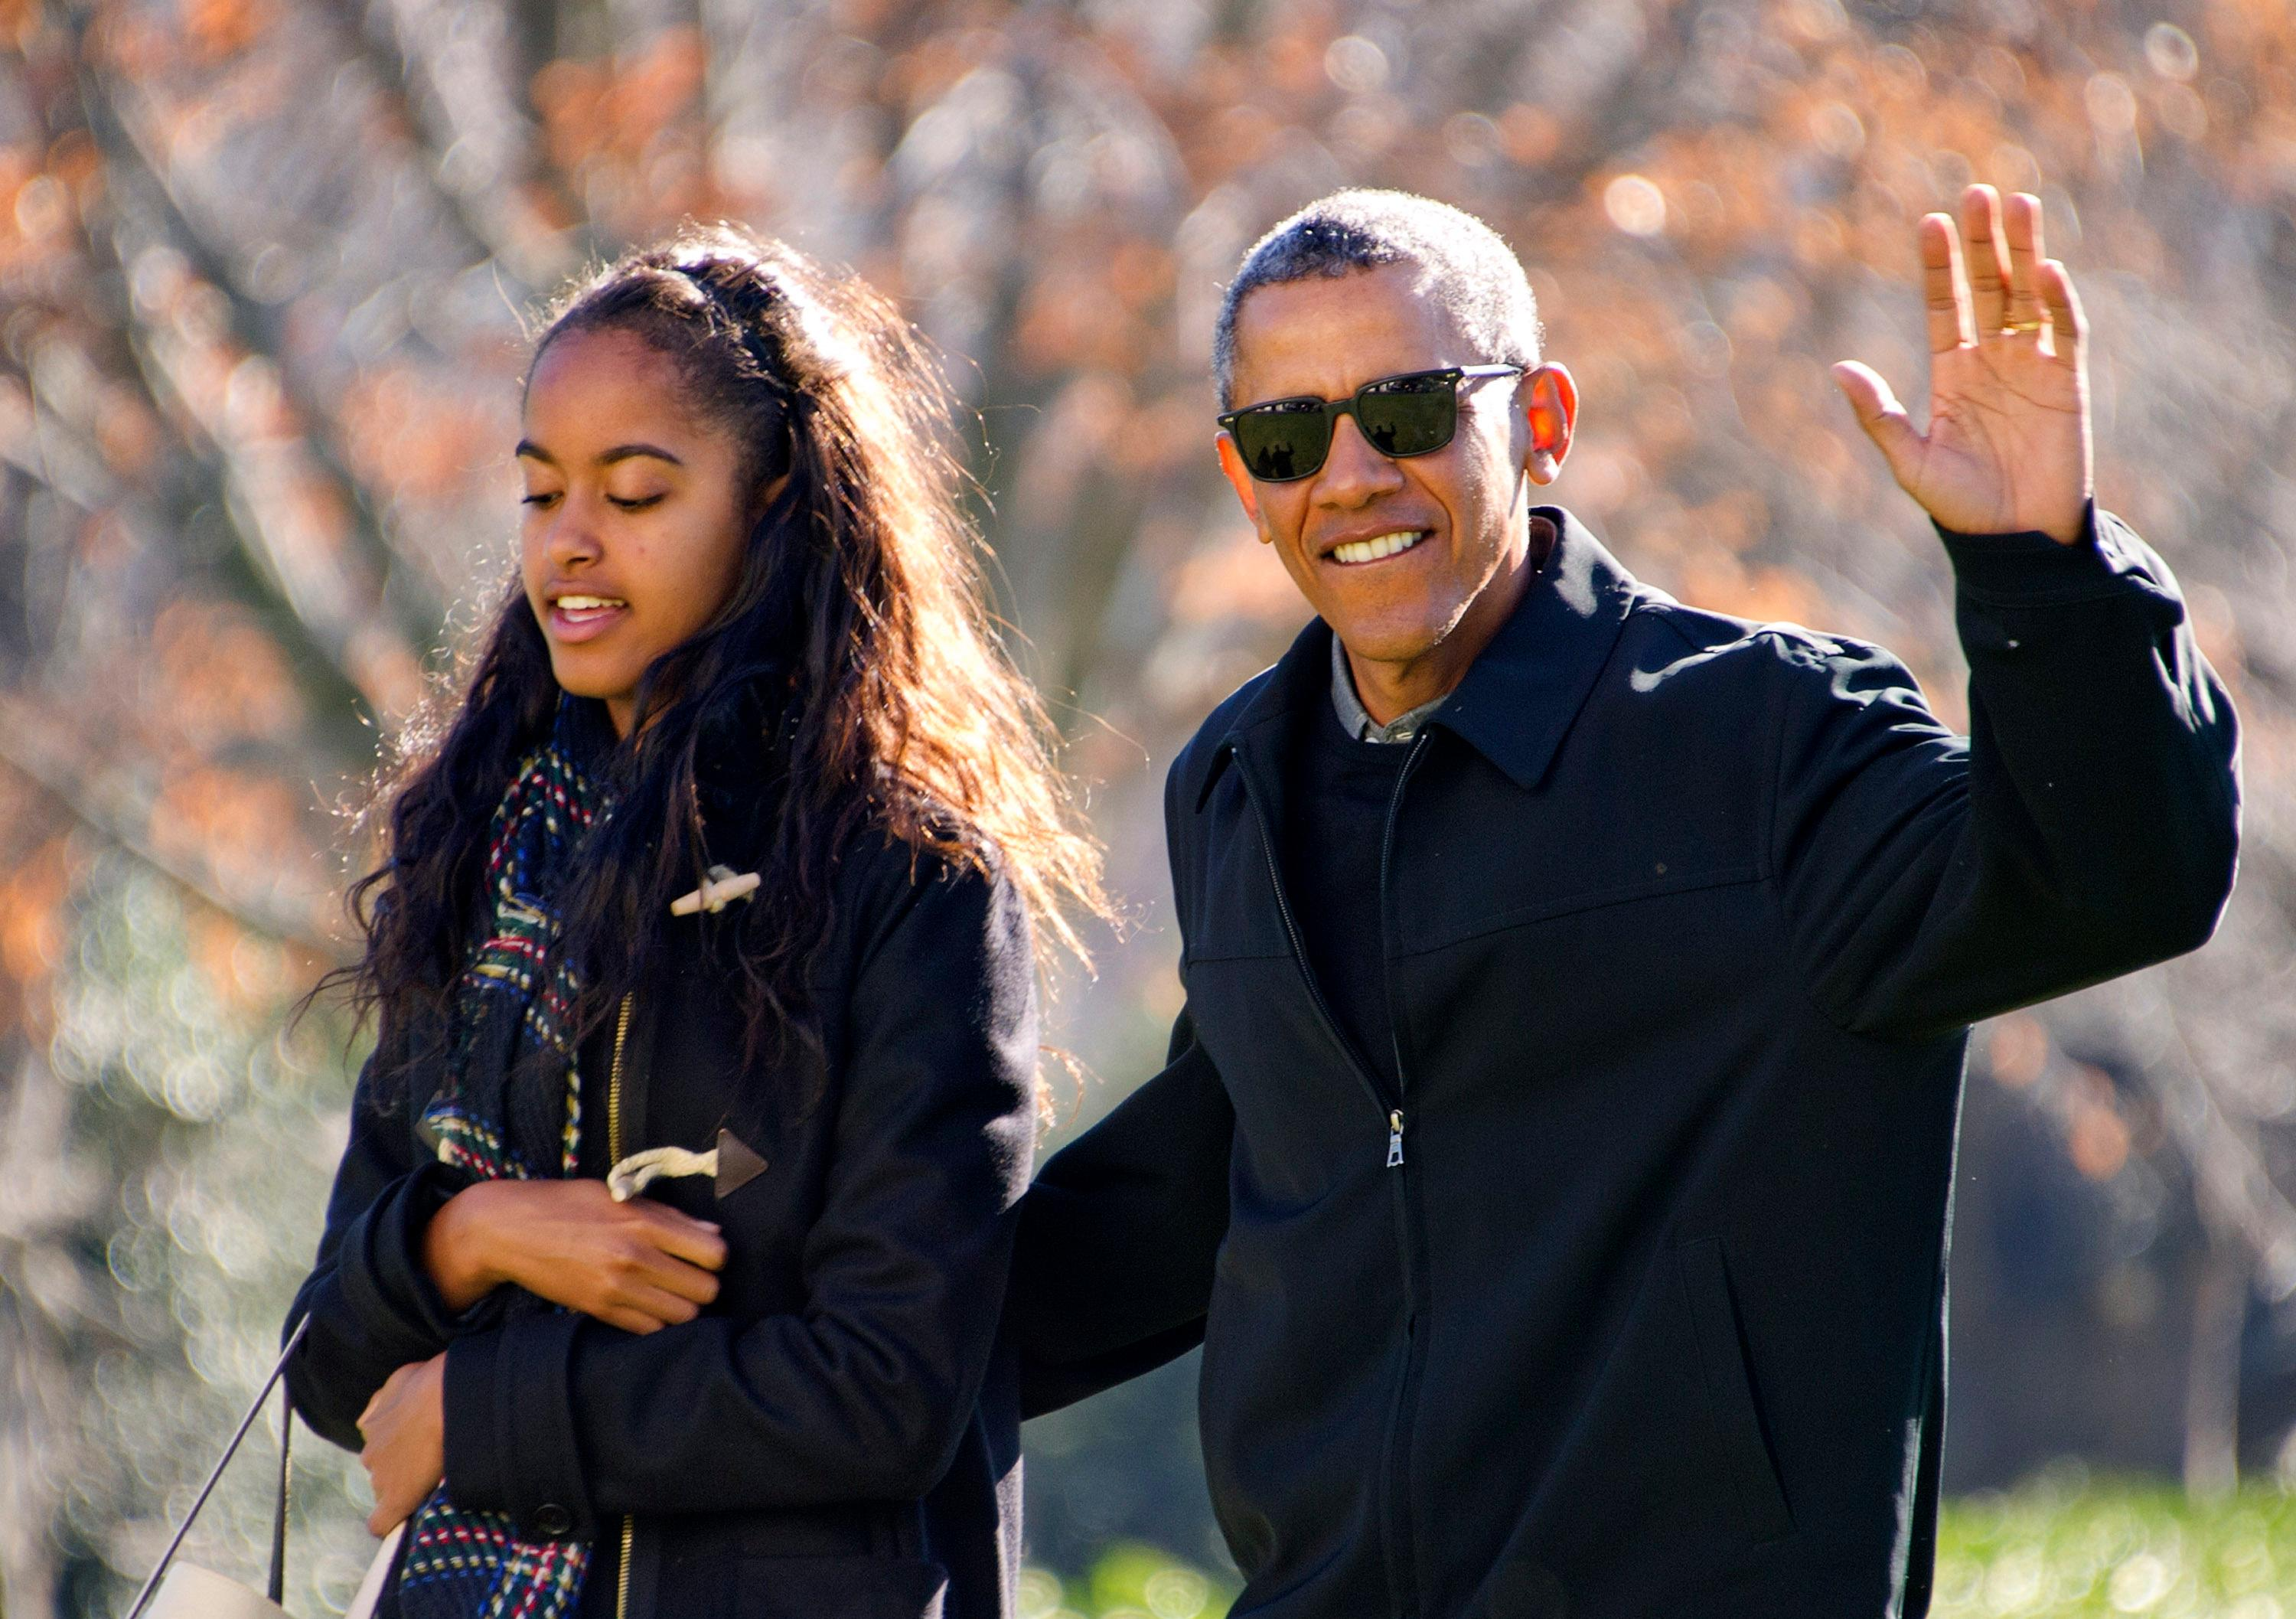 Racist commenters attack Malia Obama after news of her going to Harvard